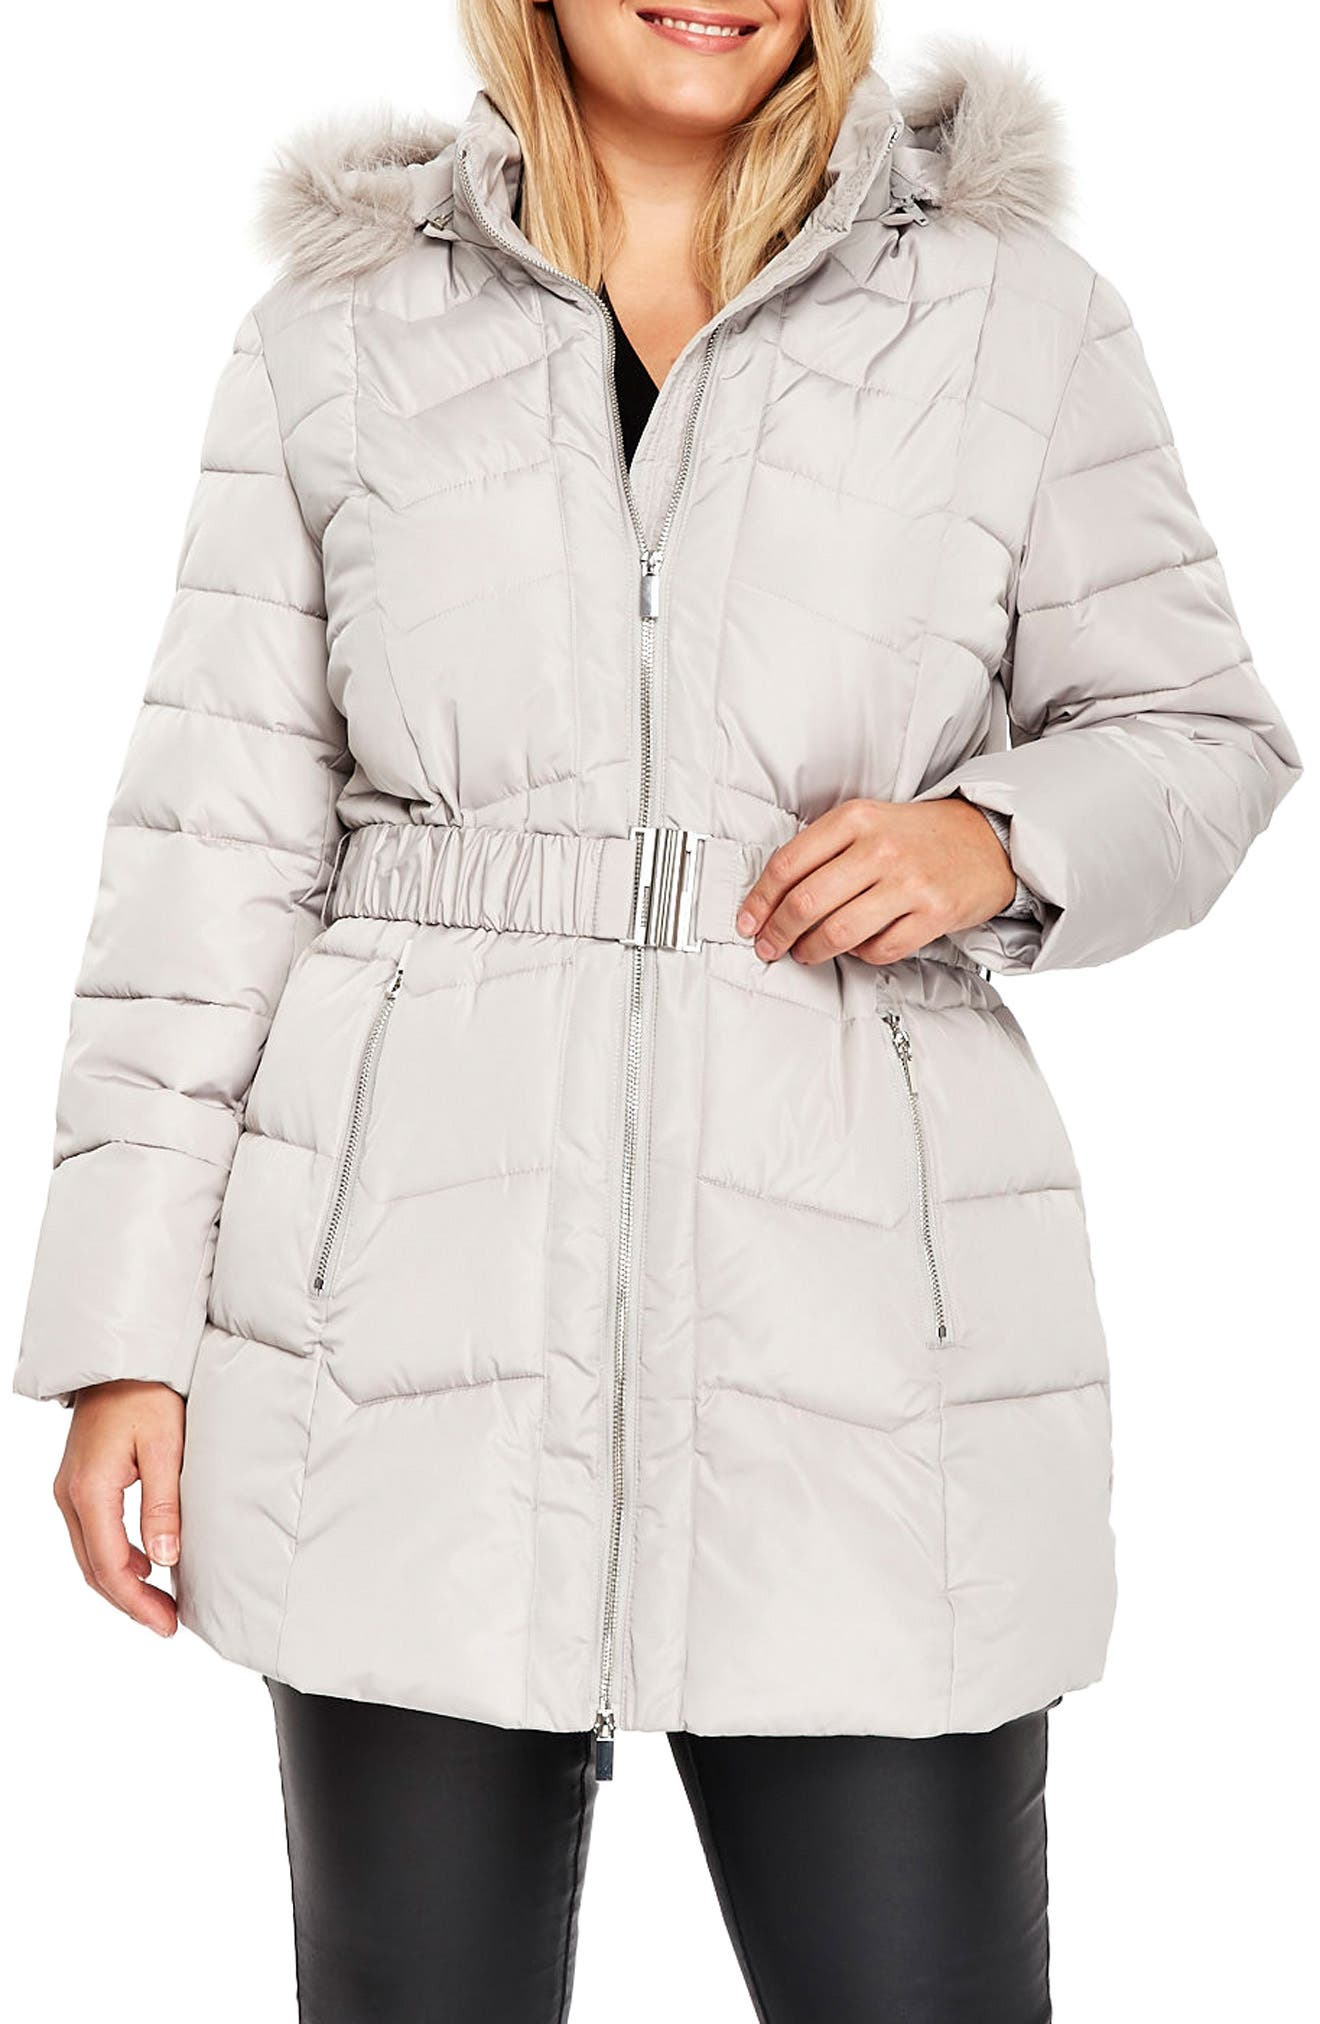 Evans Belted Puffer Jacket with Faux Fur Trim (Plus Size)